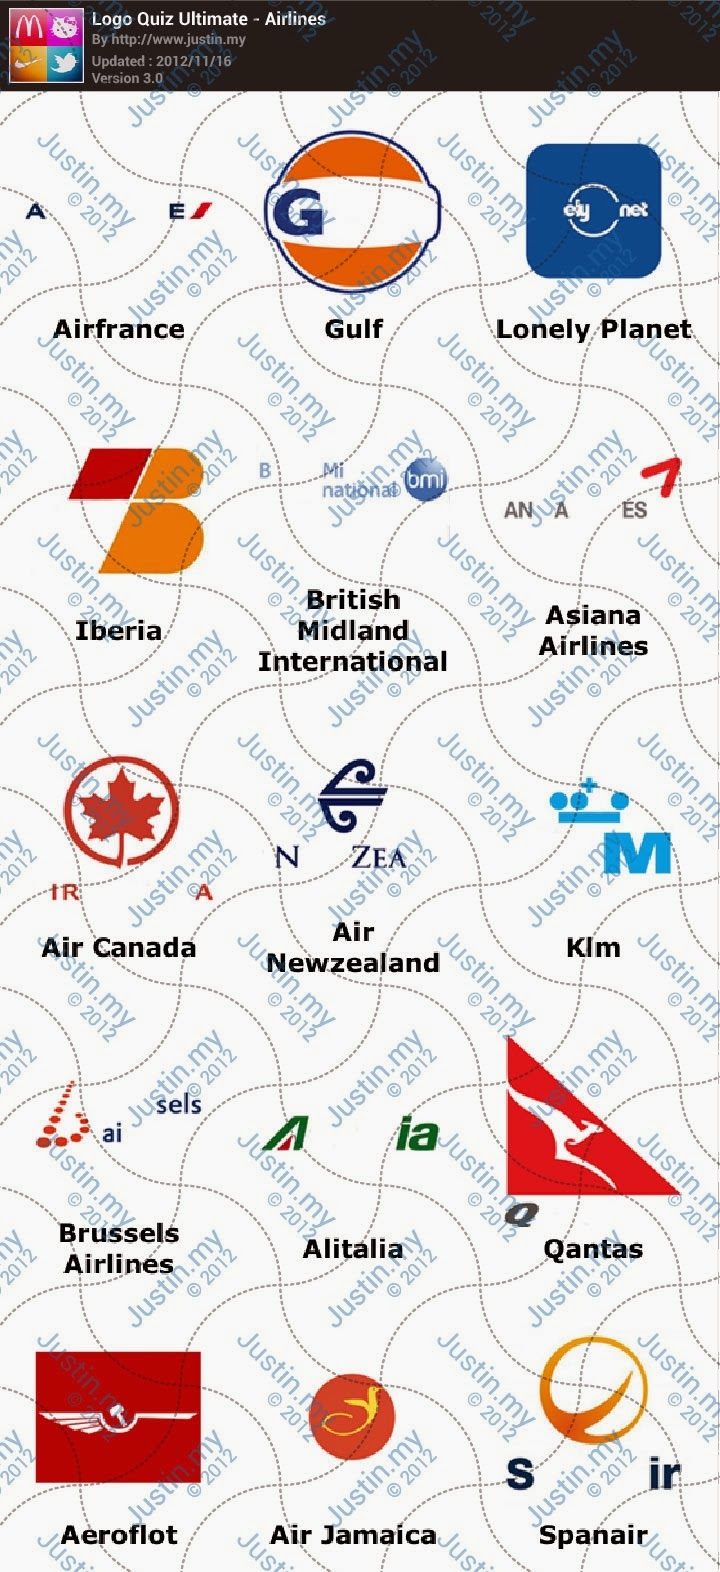 Airlines - Ultimate Logo Quiz Answers